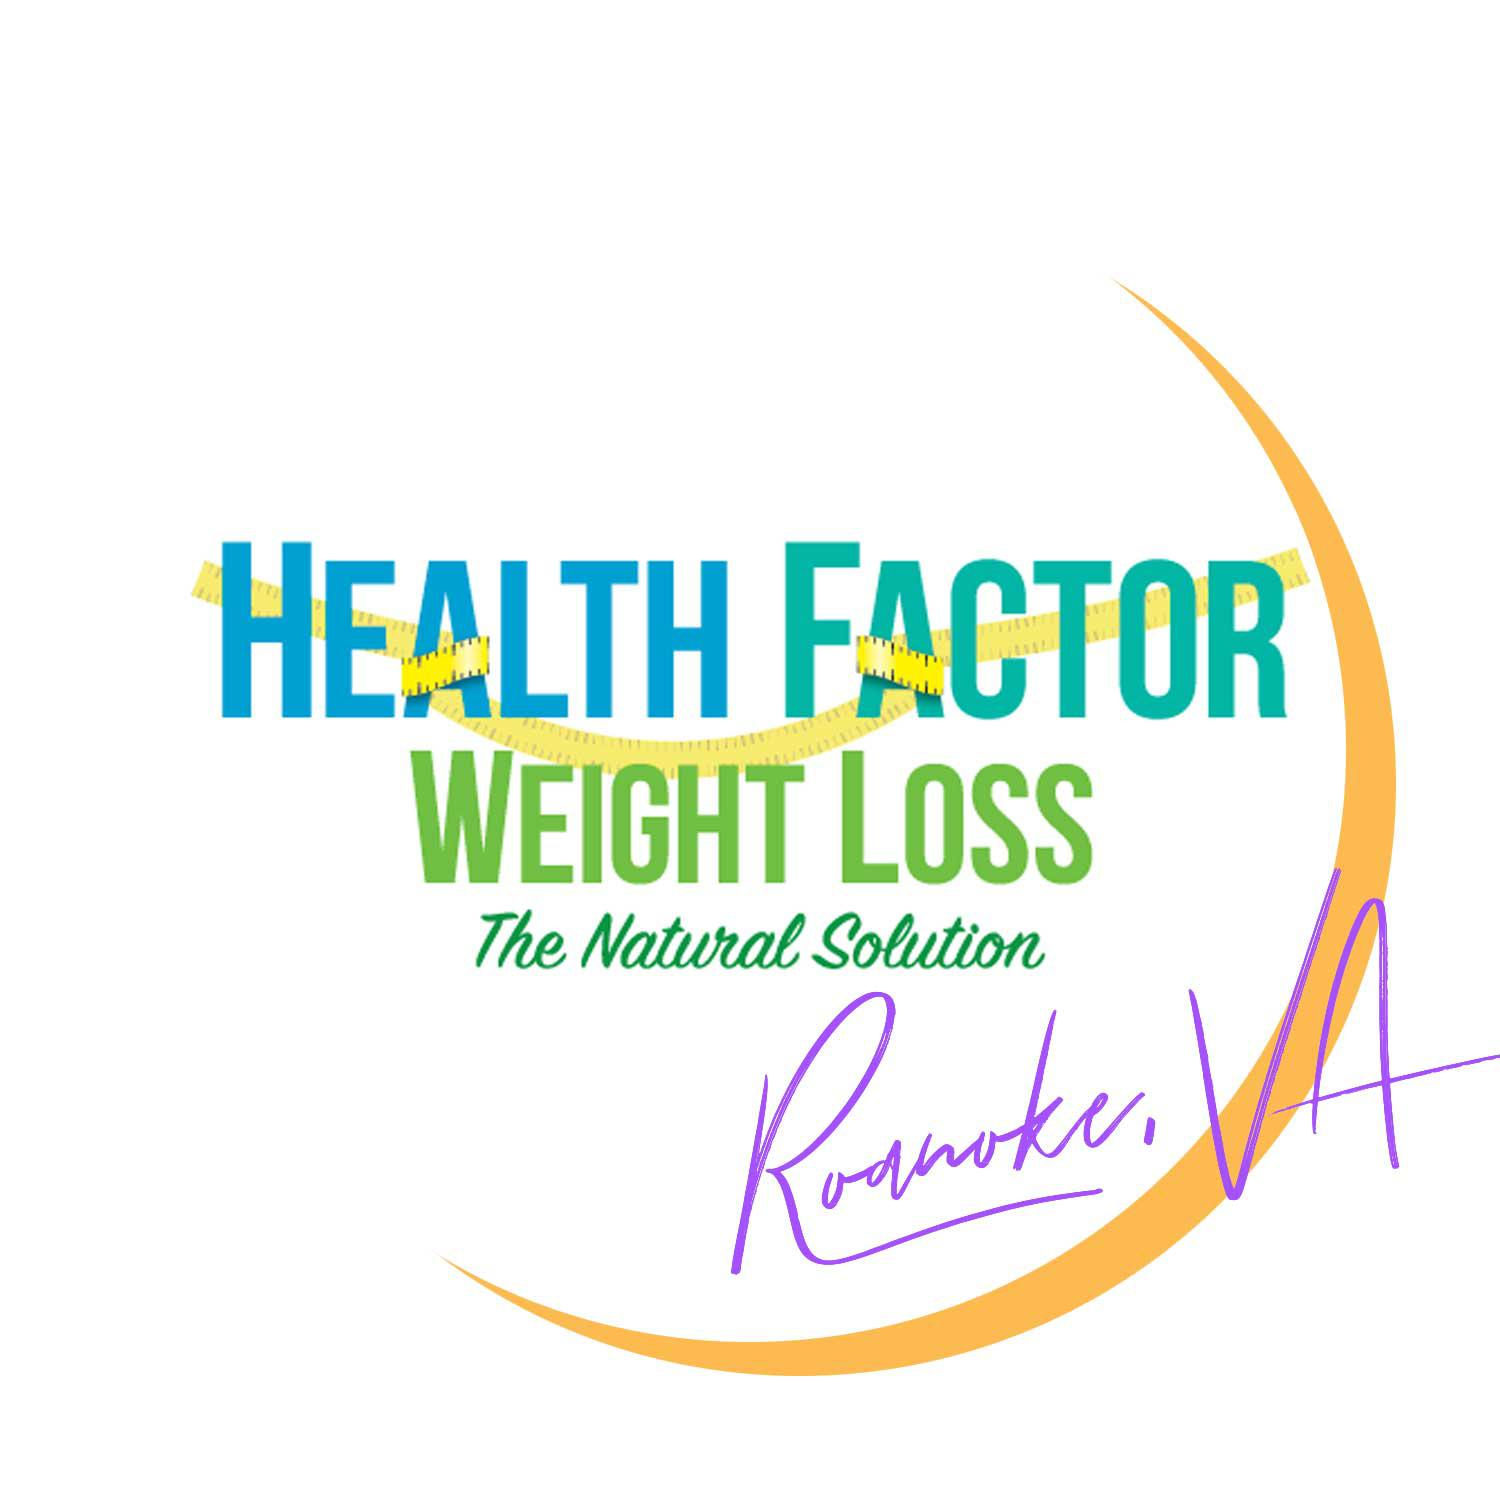 Health Factor Weight Loss | Roanoke - Roanoke, VA 24018 - (540)997-2220 | ShowMeLocal.com